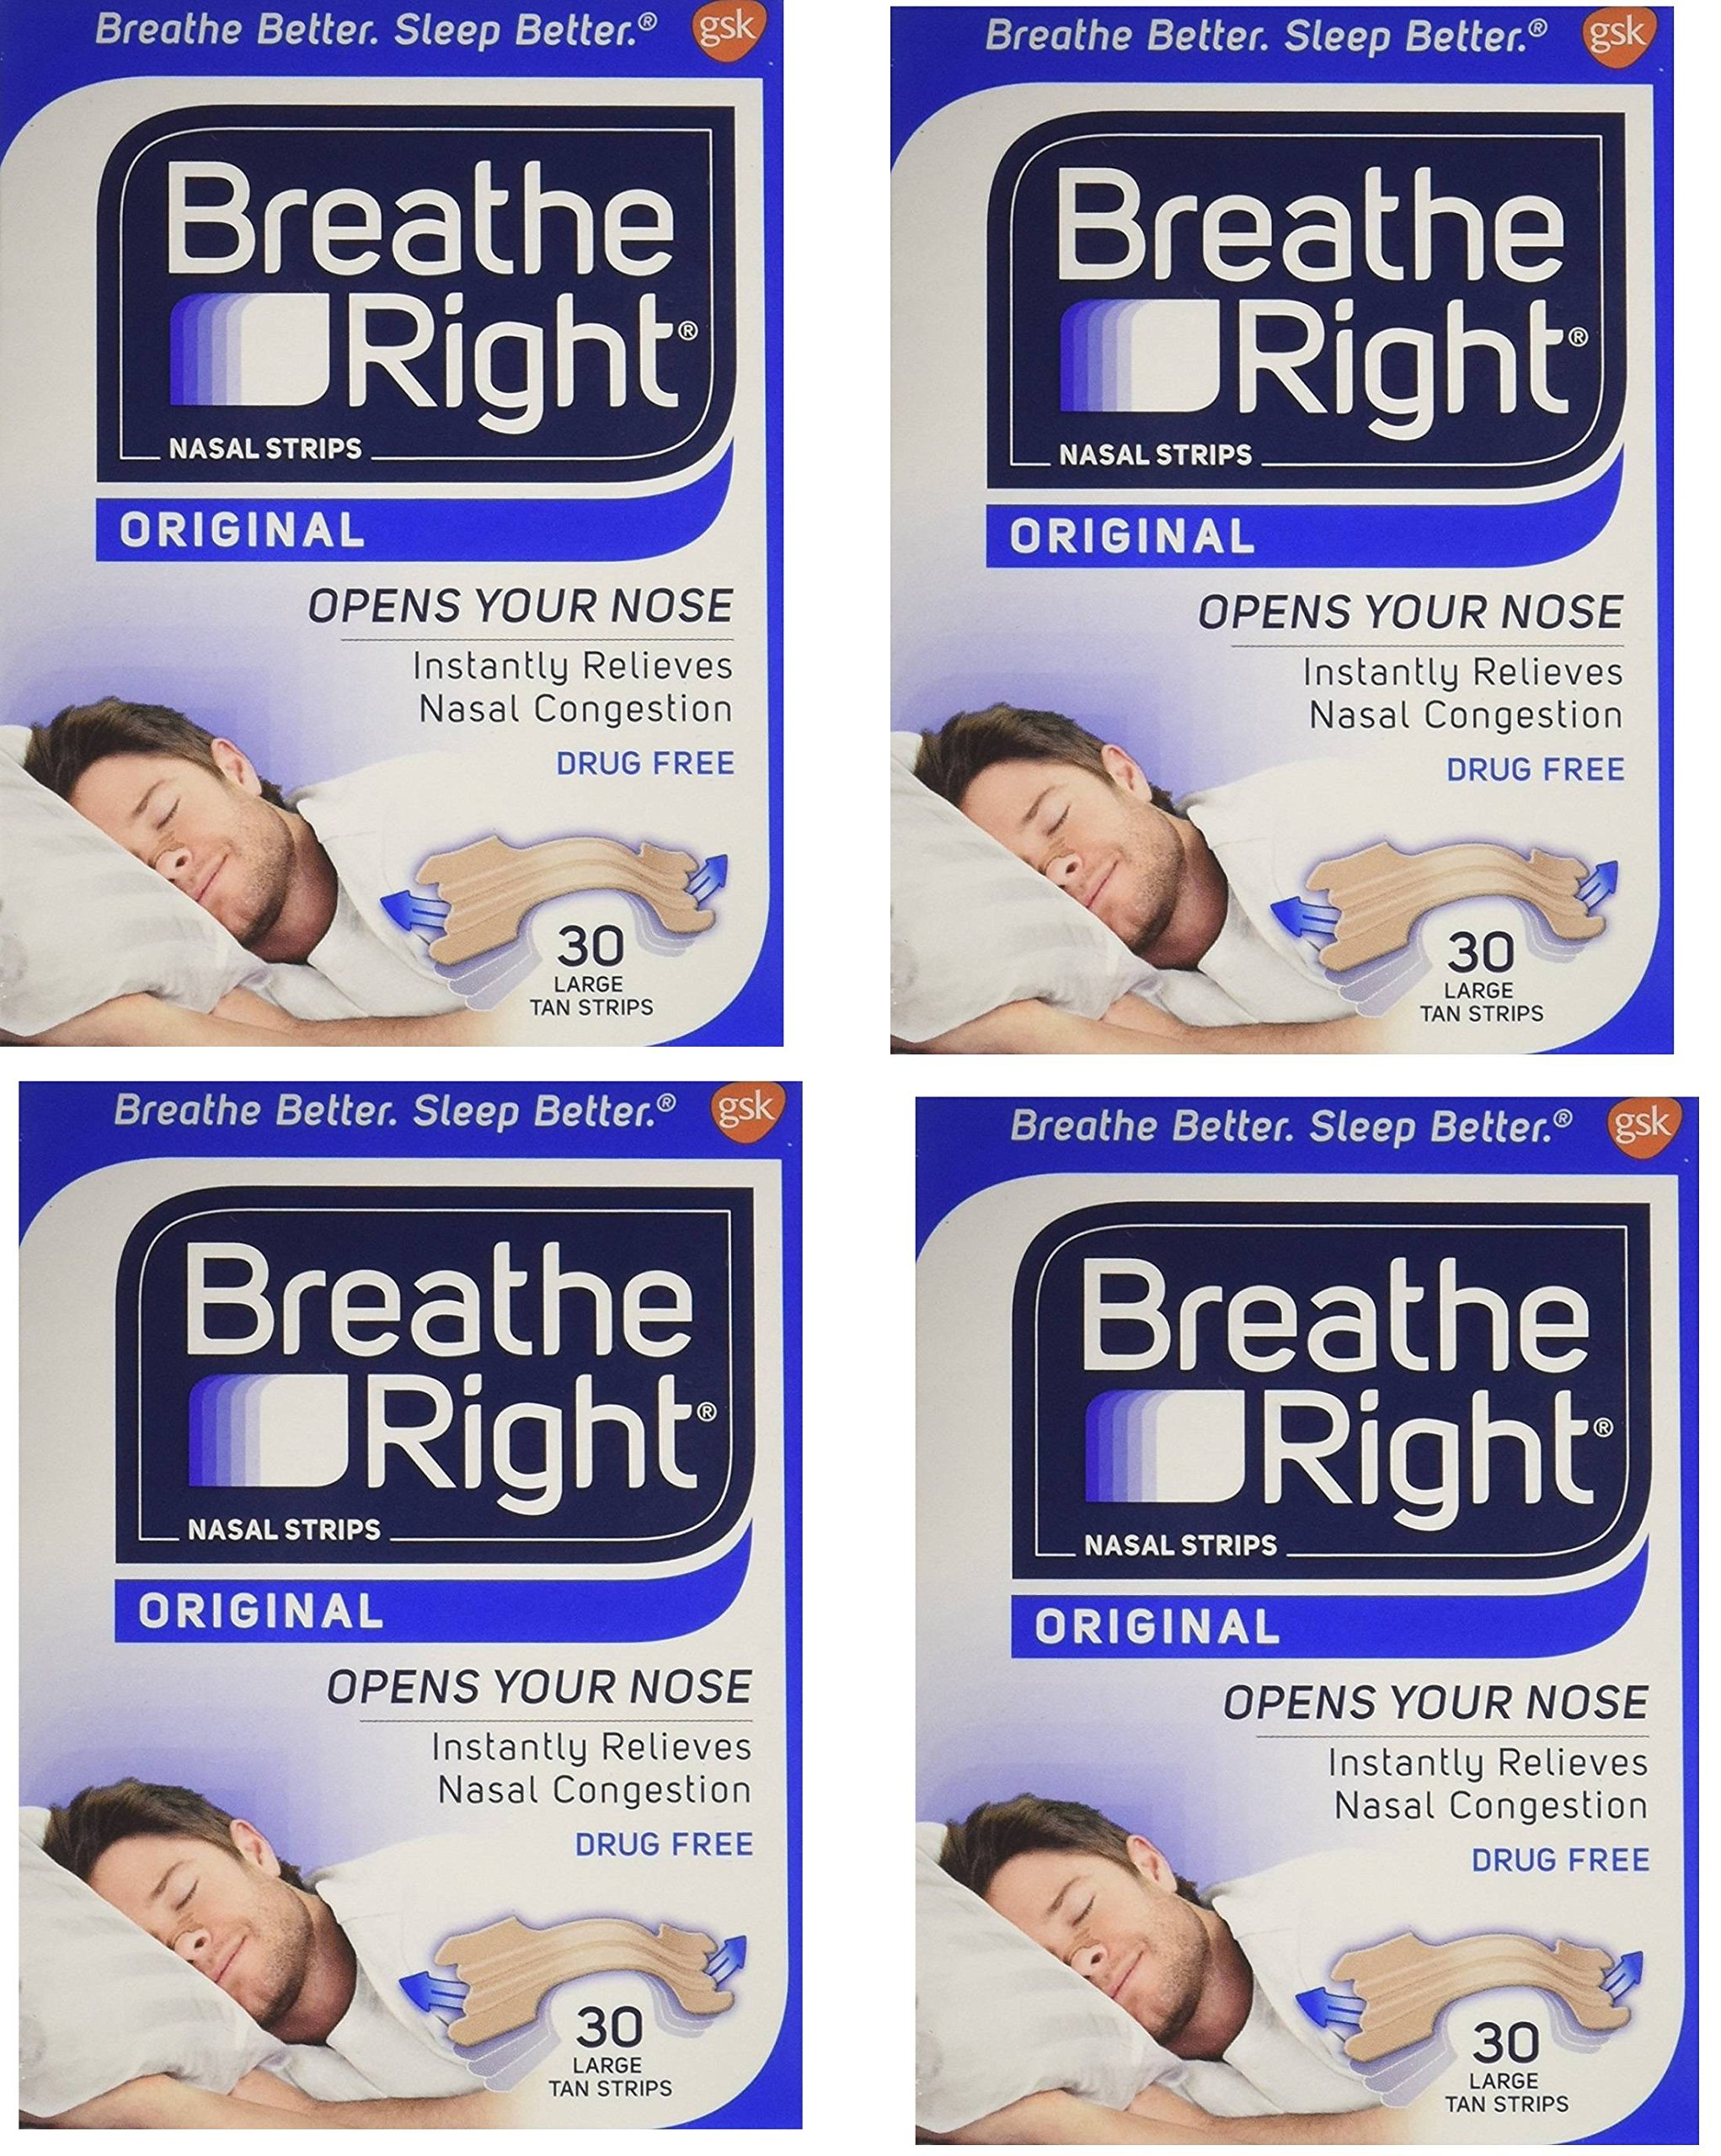 Breathe Right xYhlSC Drug Free Nasal Strips, Tan, Large, for Nasal Congestion Relief, 30 Count (4 Pack)